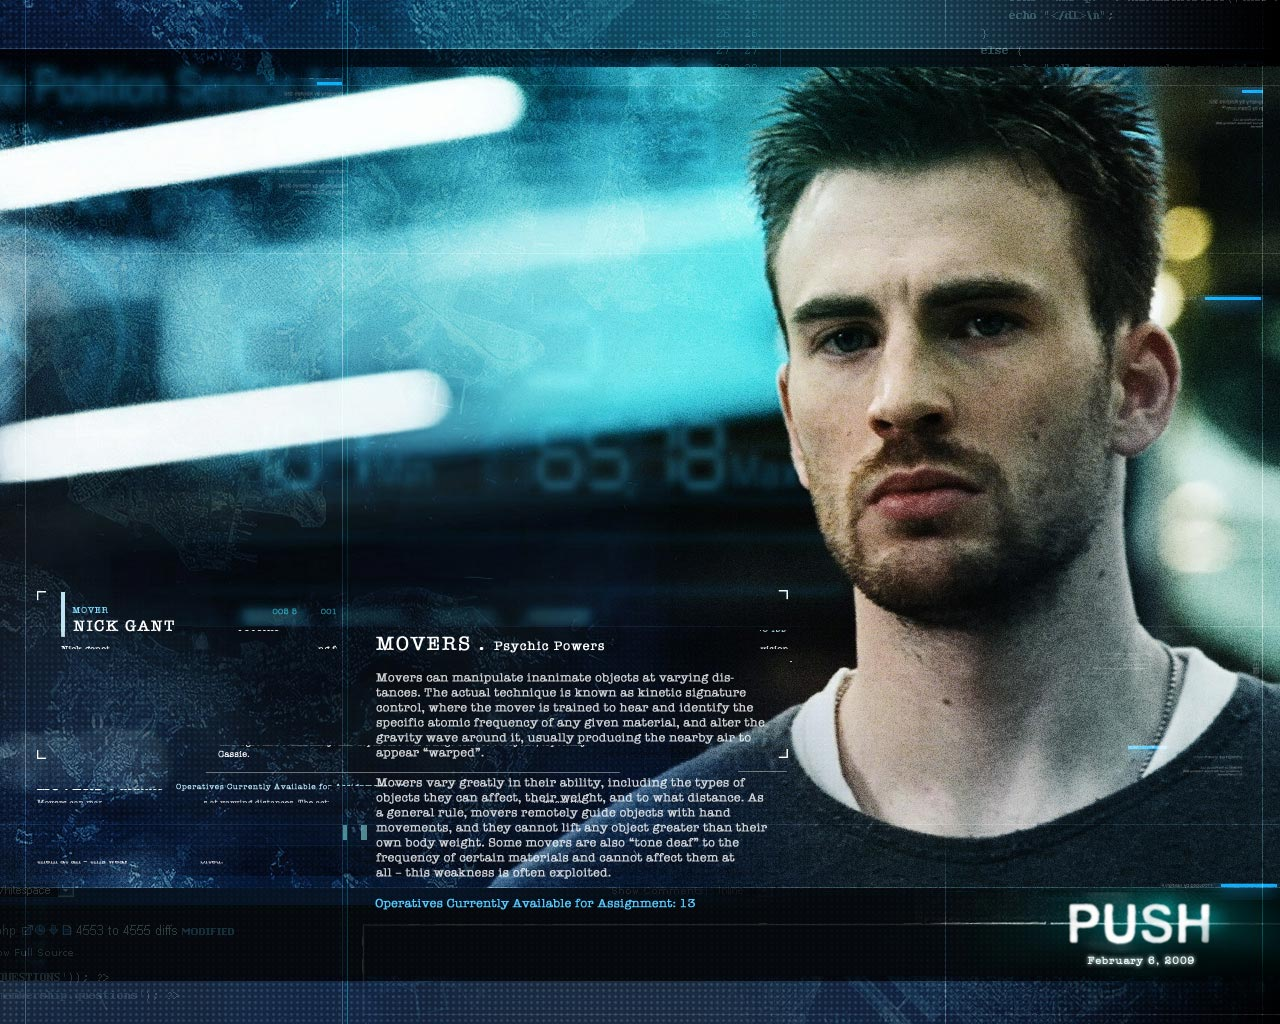 http://3.bp.blogspot.com/-R21jQF_l3Mg/UBN8gl00s6I/AAAAAAAAIEs/uiawX5_XAuc/s1600/Chris+Evans-Wallpaper-2.jpg